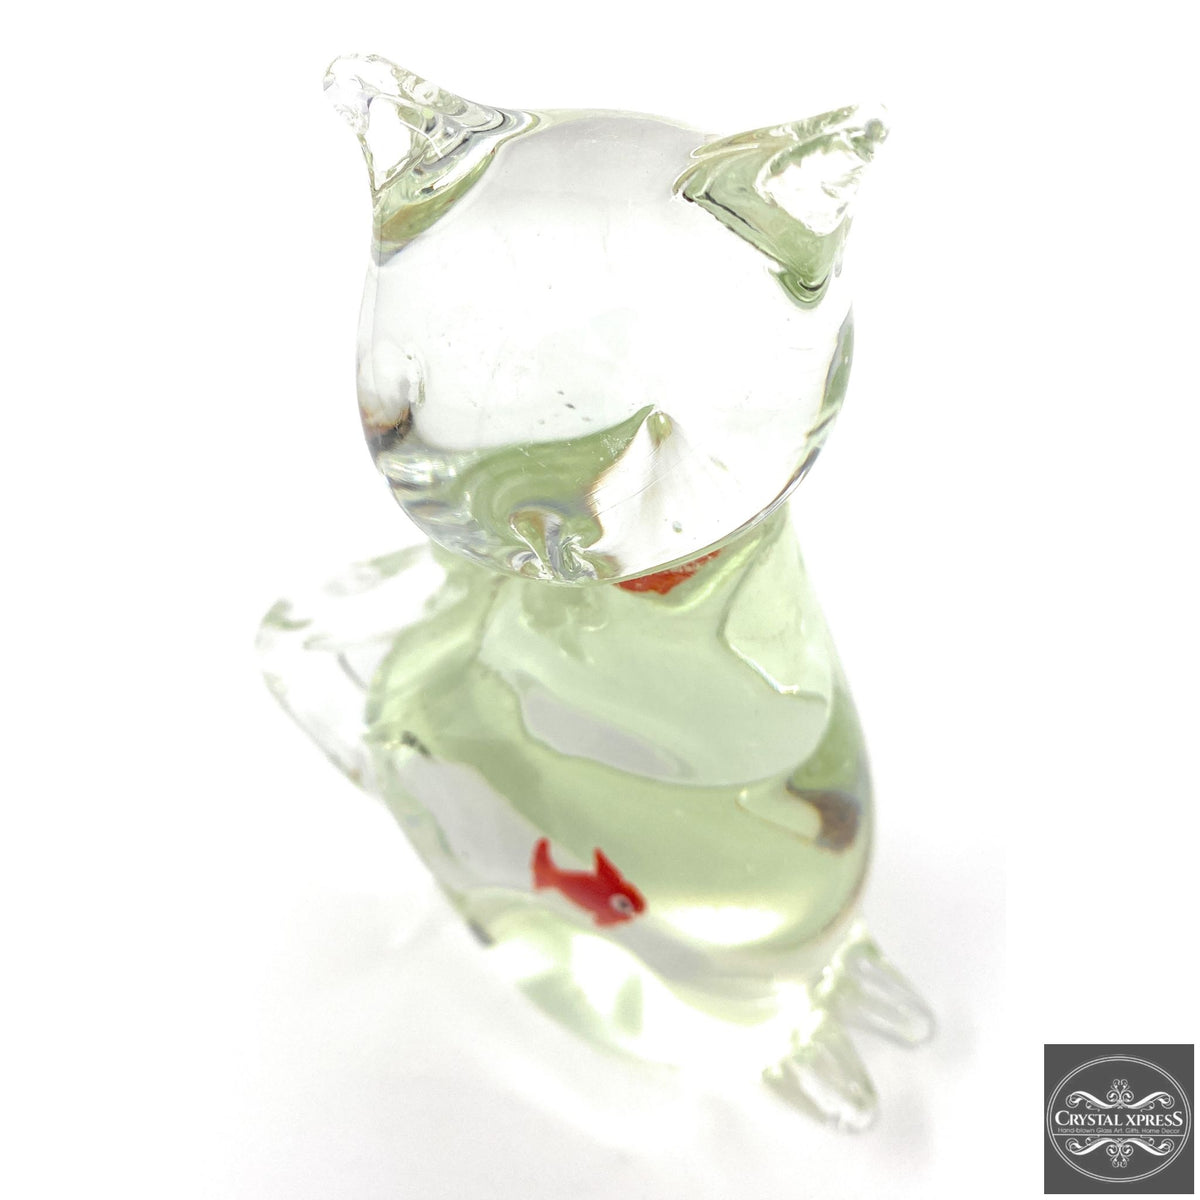 "New 7"" Hand Blown Glass Clear Color Cat Sculpture with Fish Inside FigurineCrystal Xpress"